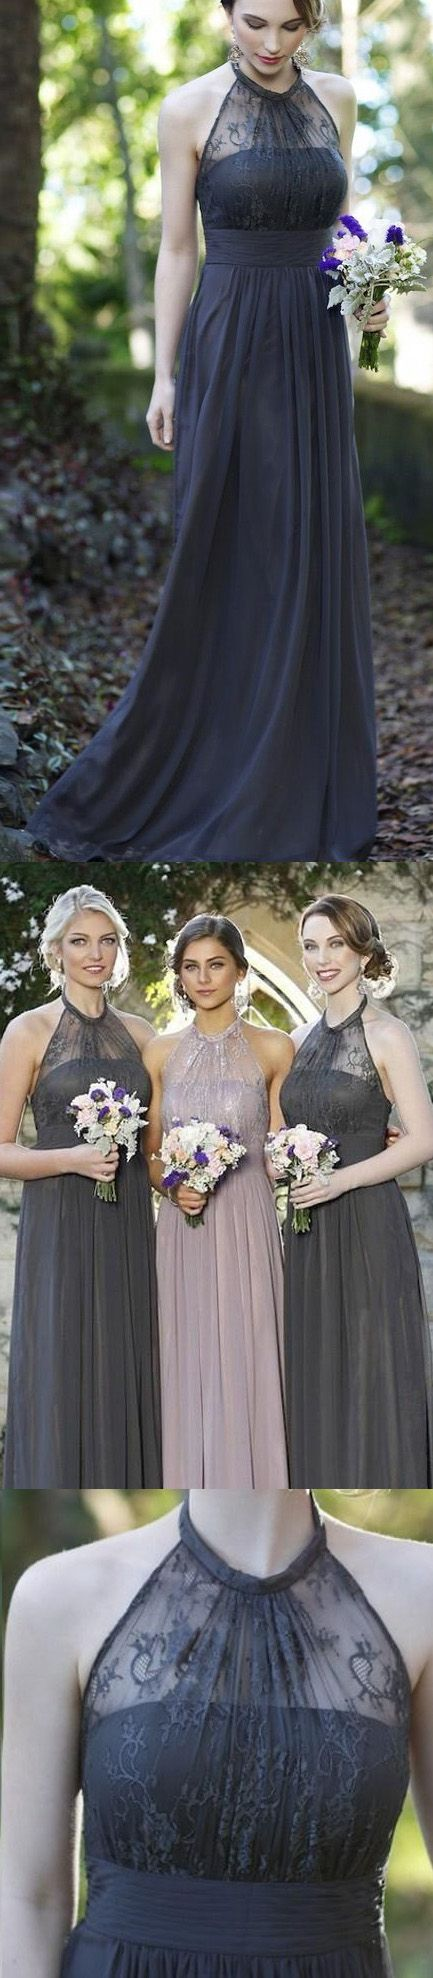 The 25 best navy lace bridesmaid dress ideas on pinterest navy long a lineprincess bridesmaid dresses navy sleeveless with lace floor length bridesmaid dresses wf02g47 816 ombrellifo Choice Image